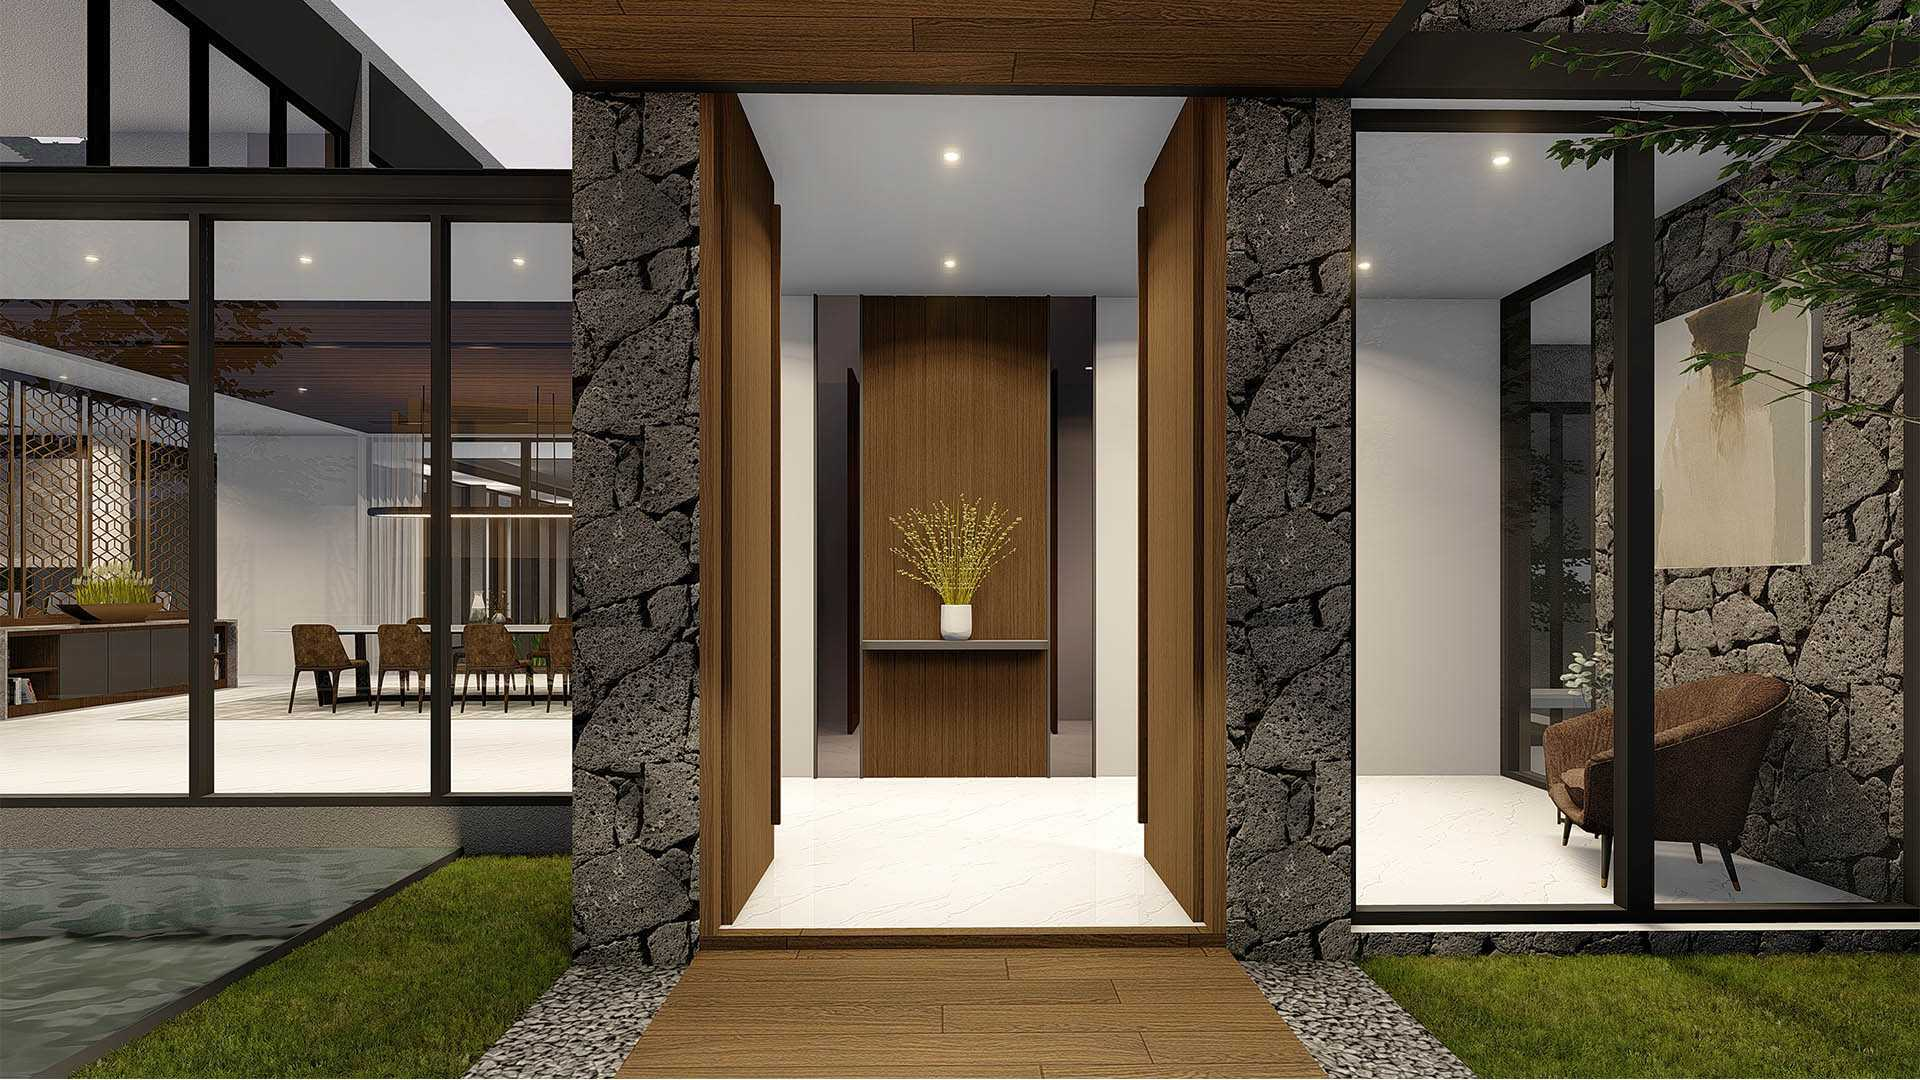 Co Associates J House Lampung, Indonesia Lampung, Indonesia Co-Associates-J-House  97022